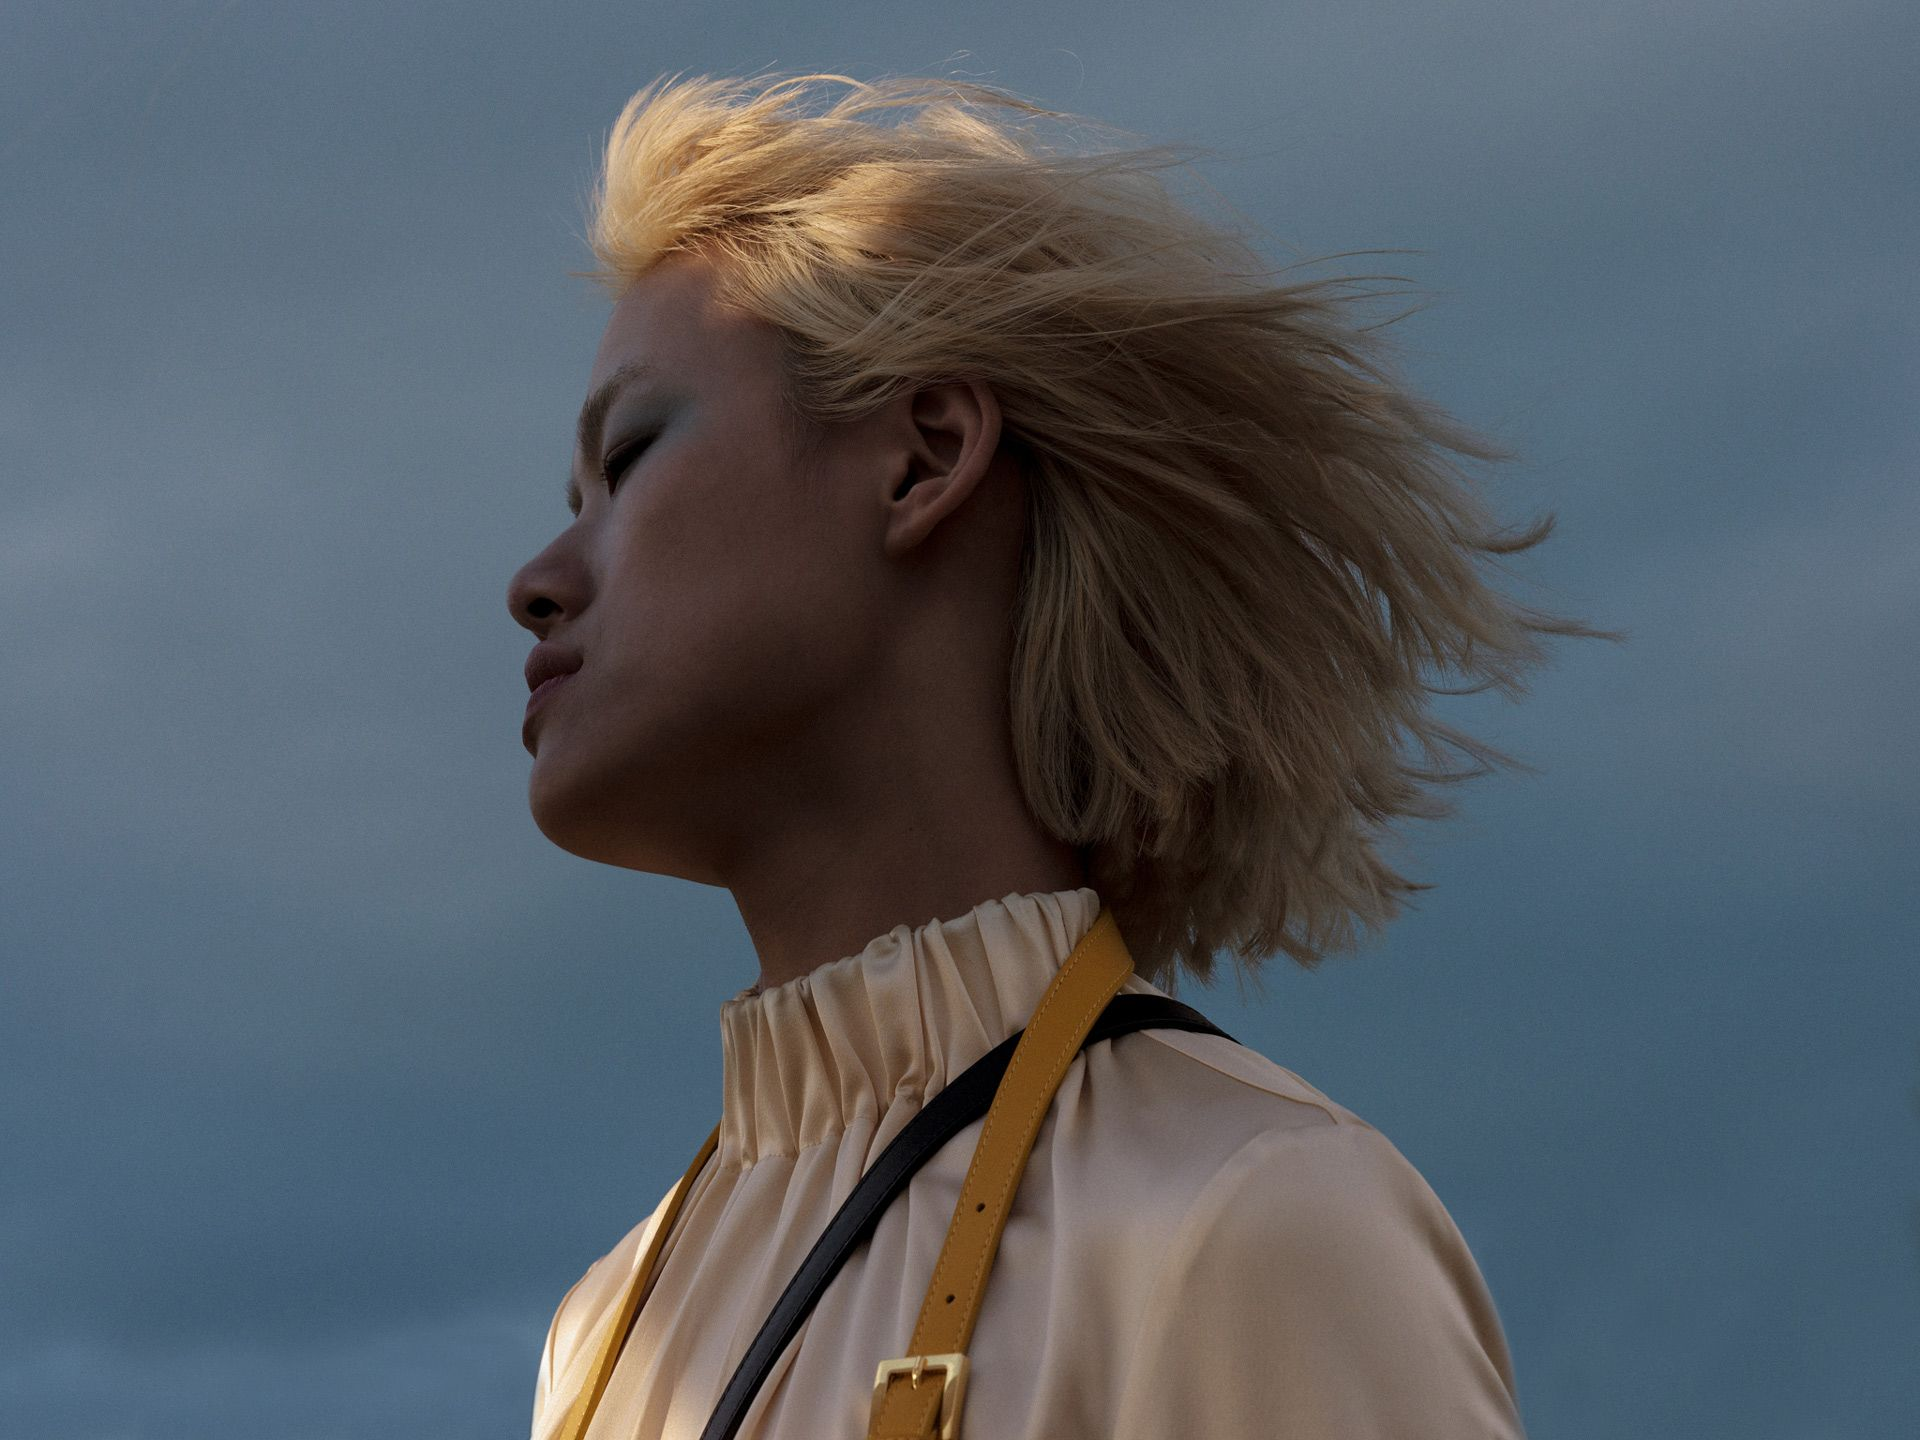 close portrait of asian model with hair in the wind photographed by Alexi Hobbs for Want Les Essentiels Spring Summer 2019 collection